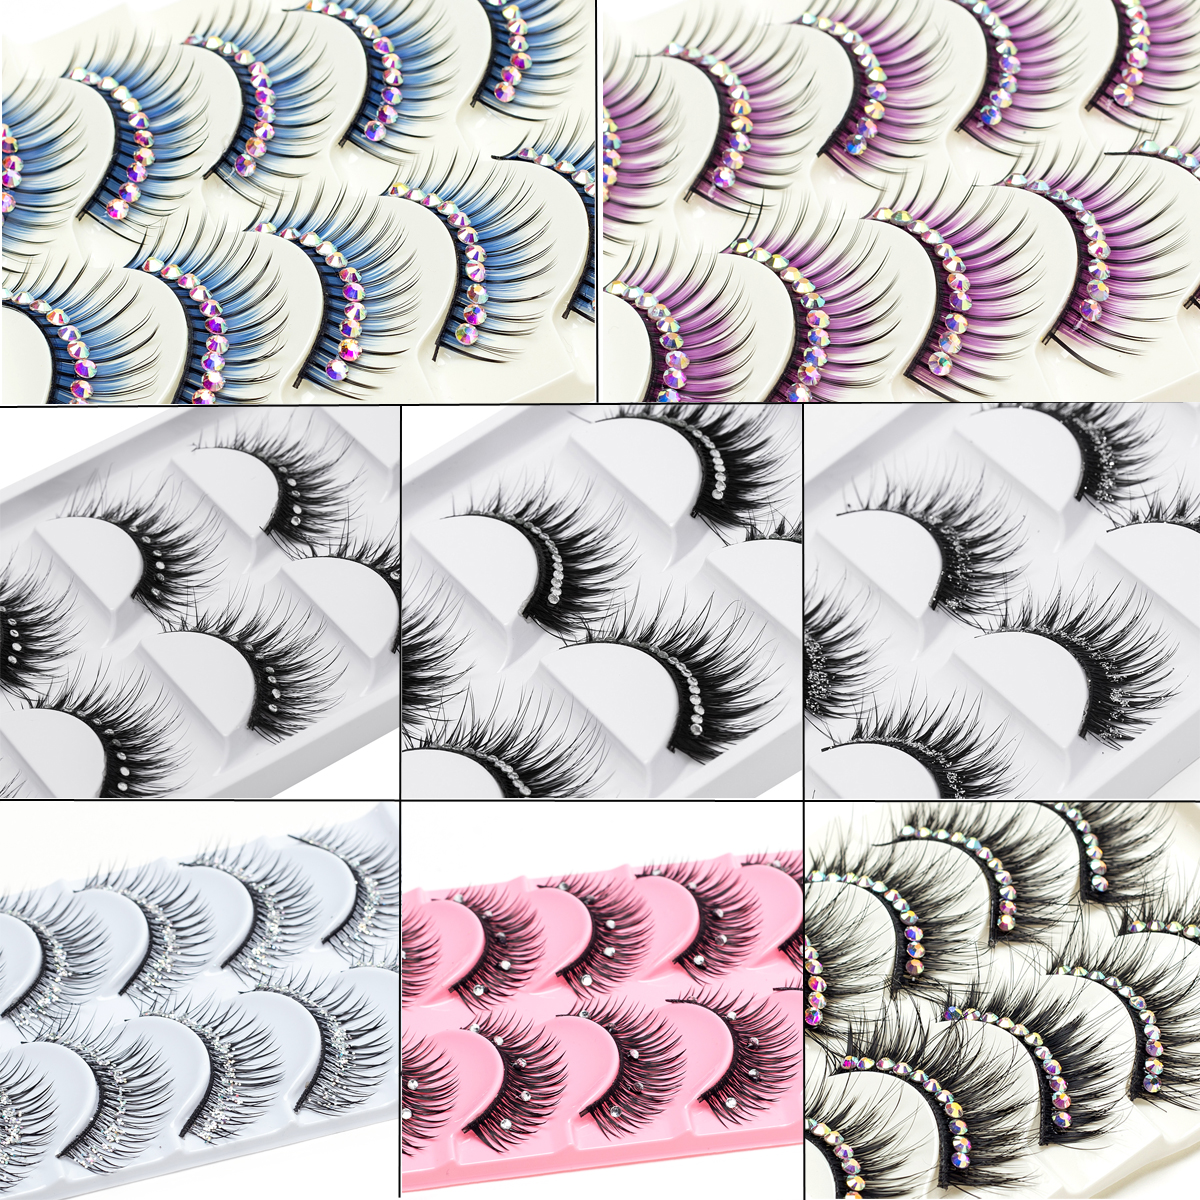 ICYCHEER 5 Pairs Makeup False Diamond Eyelashes Natural Lashes Extension Handmade Long Mink Lash Glitter Fake Eyelash Cosmetics